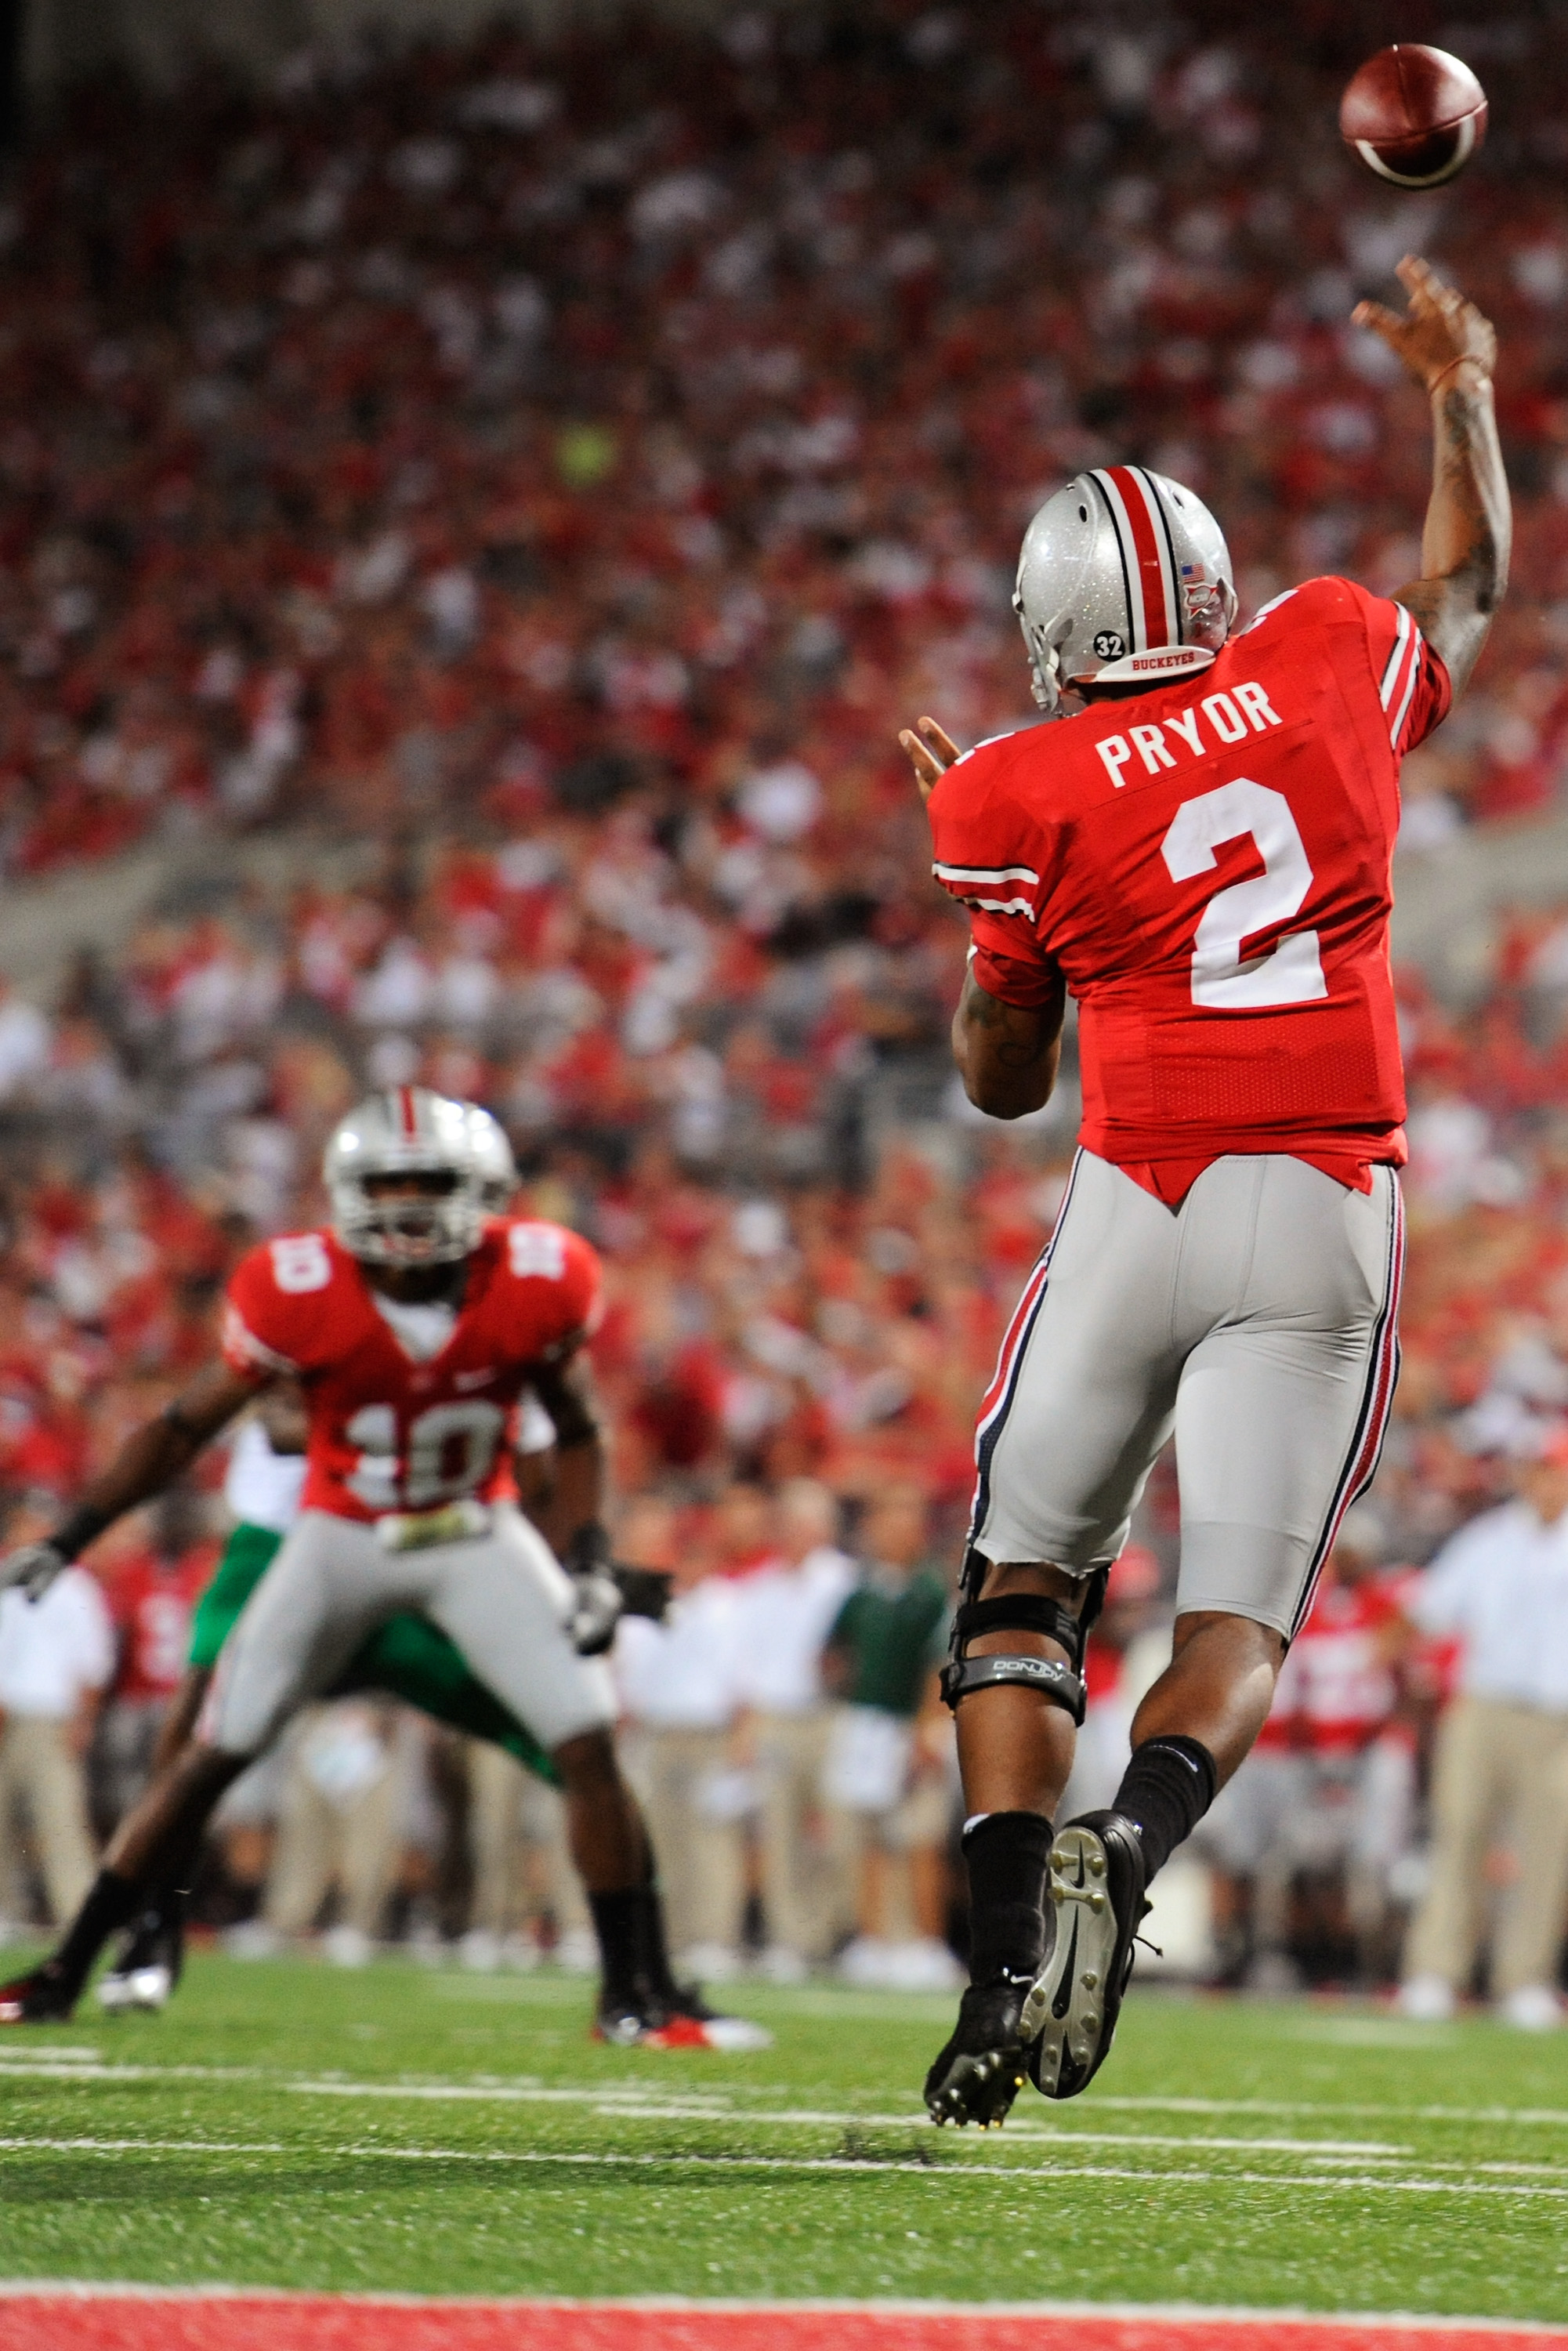 COLUMBUS, OH - SEPTEMBER 2:  Terrelle Pryor #2 of the Ohio State Buckeyes attempts a pass to Corey Brown #10 of the Ohio State Buckeyes against the Marshall Thundering Herd at Ohio Stadium on September 2, 2010 in Columbus, Ohio.  (Photo by Jamie Sabau/Get